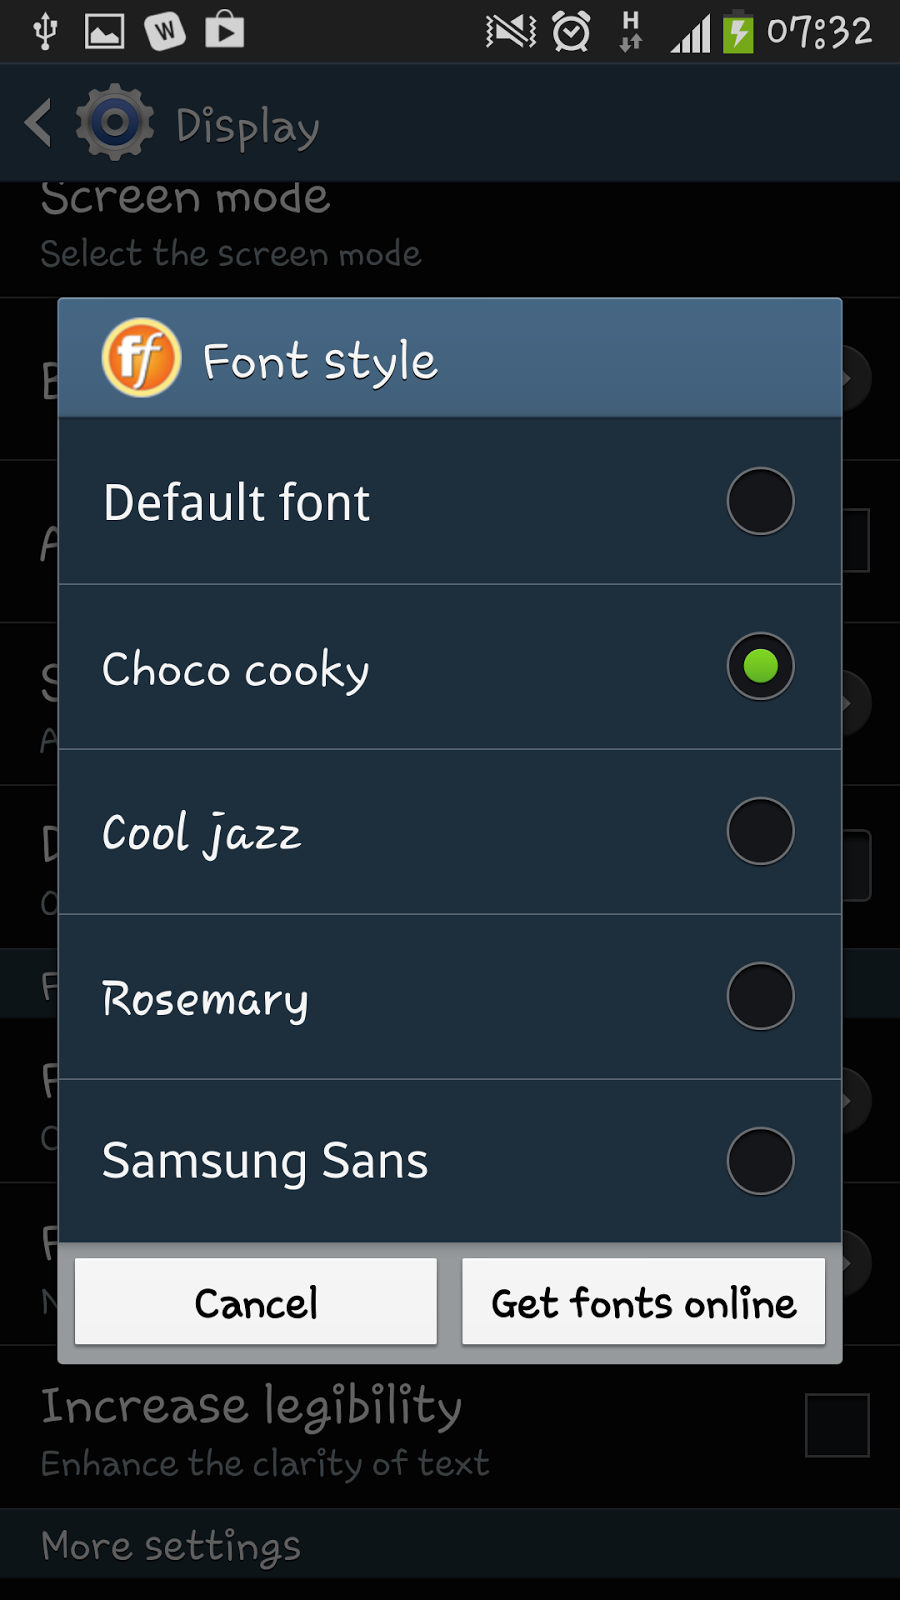 Mobile Phone Tips and Tricks How to change the font style on a